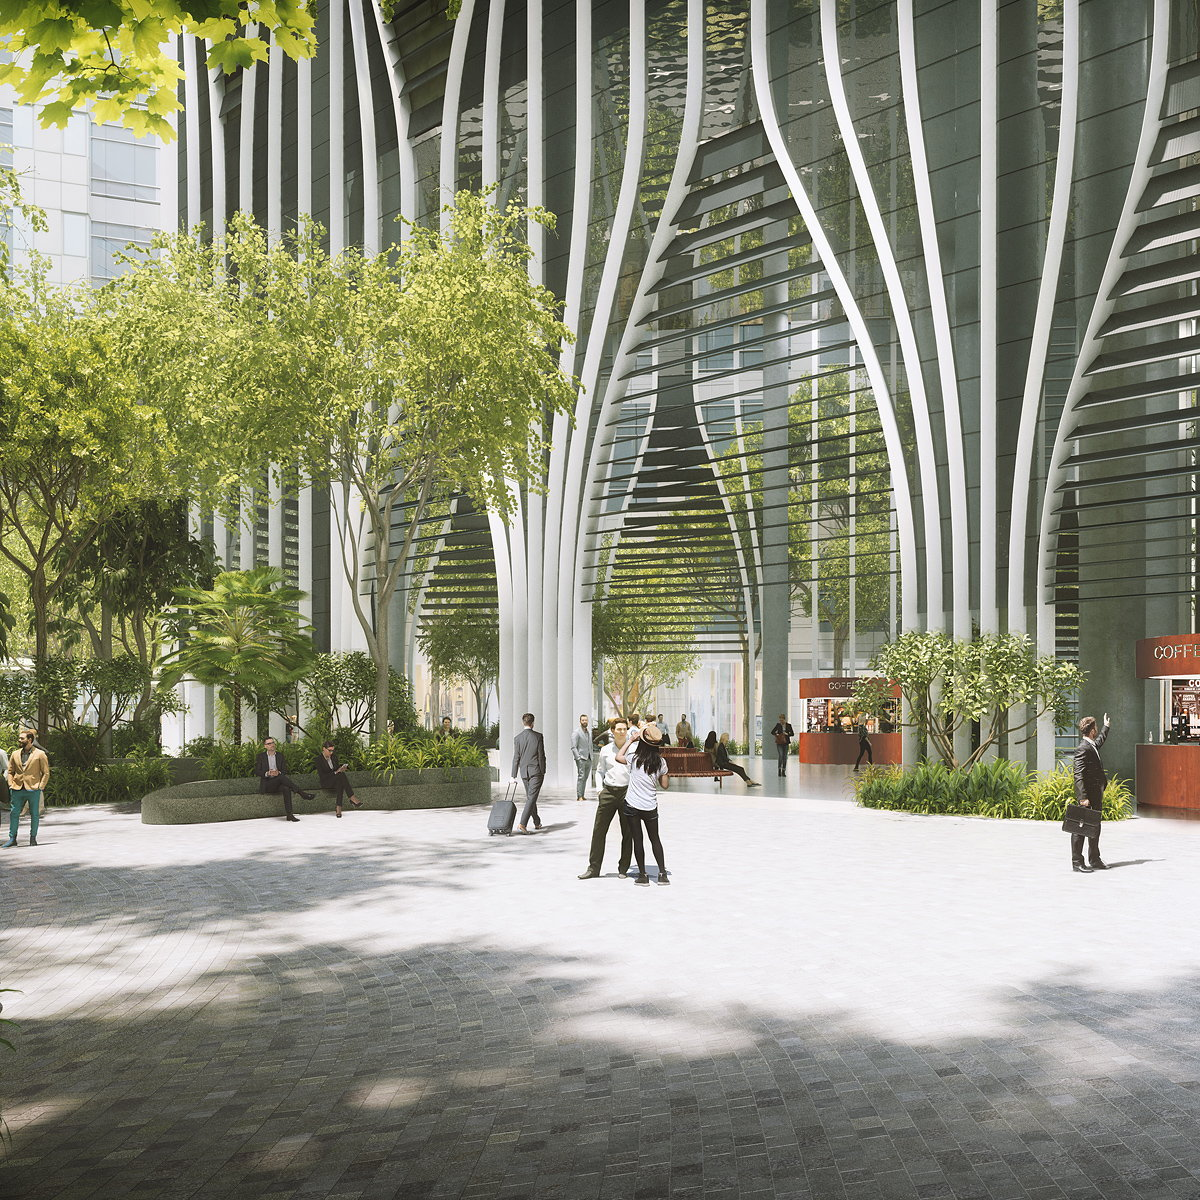 Carlo Ratti Associati and Bjarke Ingels Group Design 280m Green Oasis Tower in Singapore